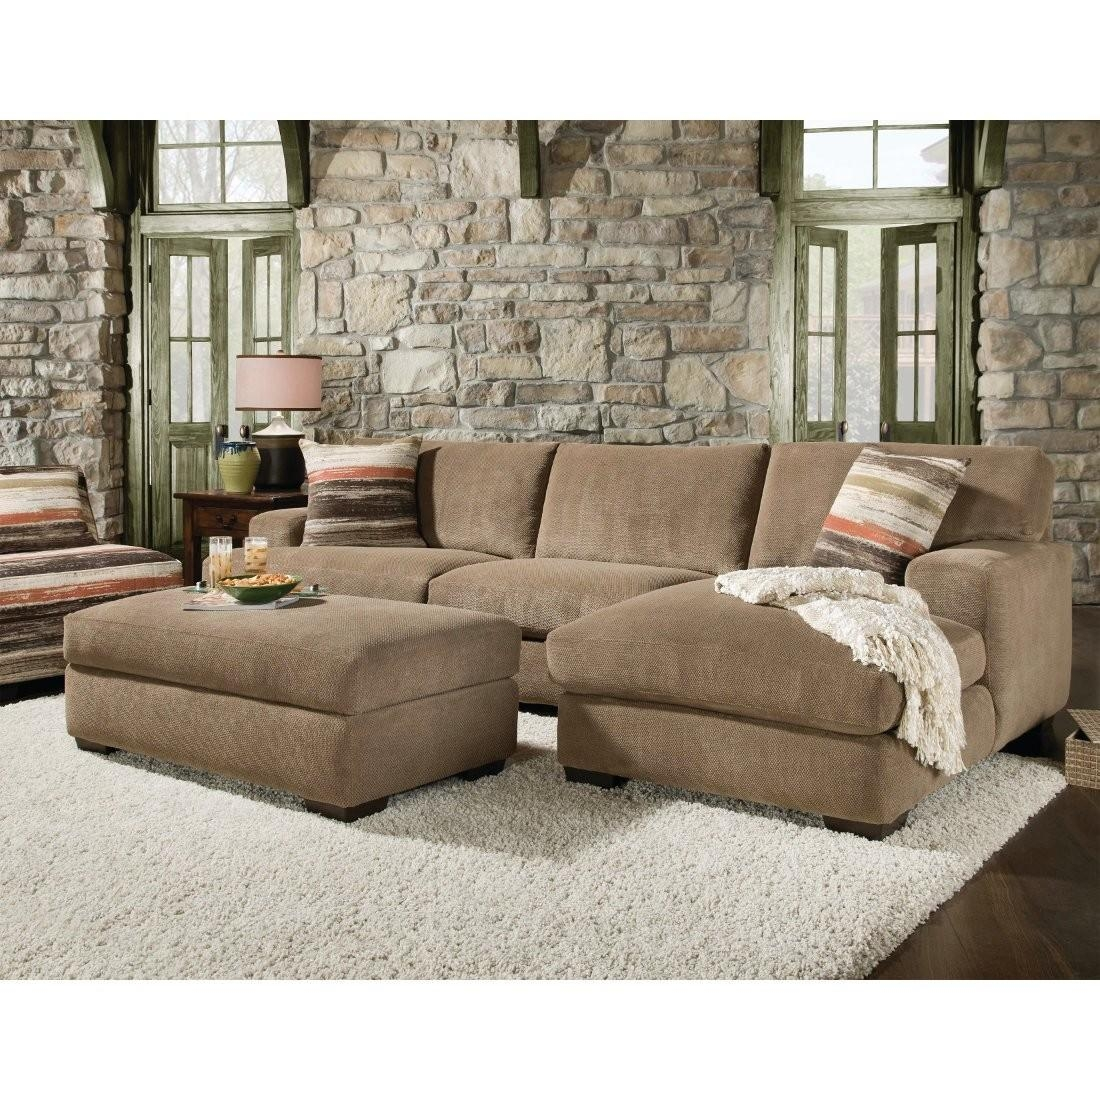 2 Piece Sectional Sofa With Chaise Design | Homesfeed Intended For Sectional Sofa With 2 Chaises (Image 4 of 20)